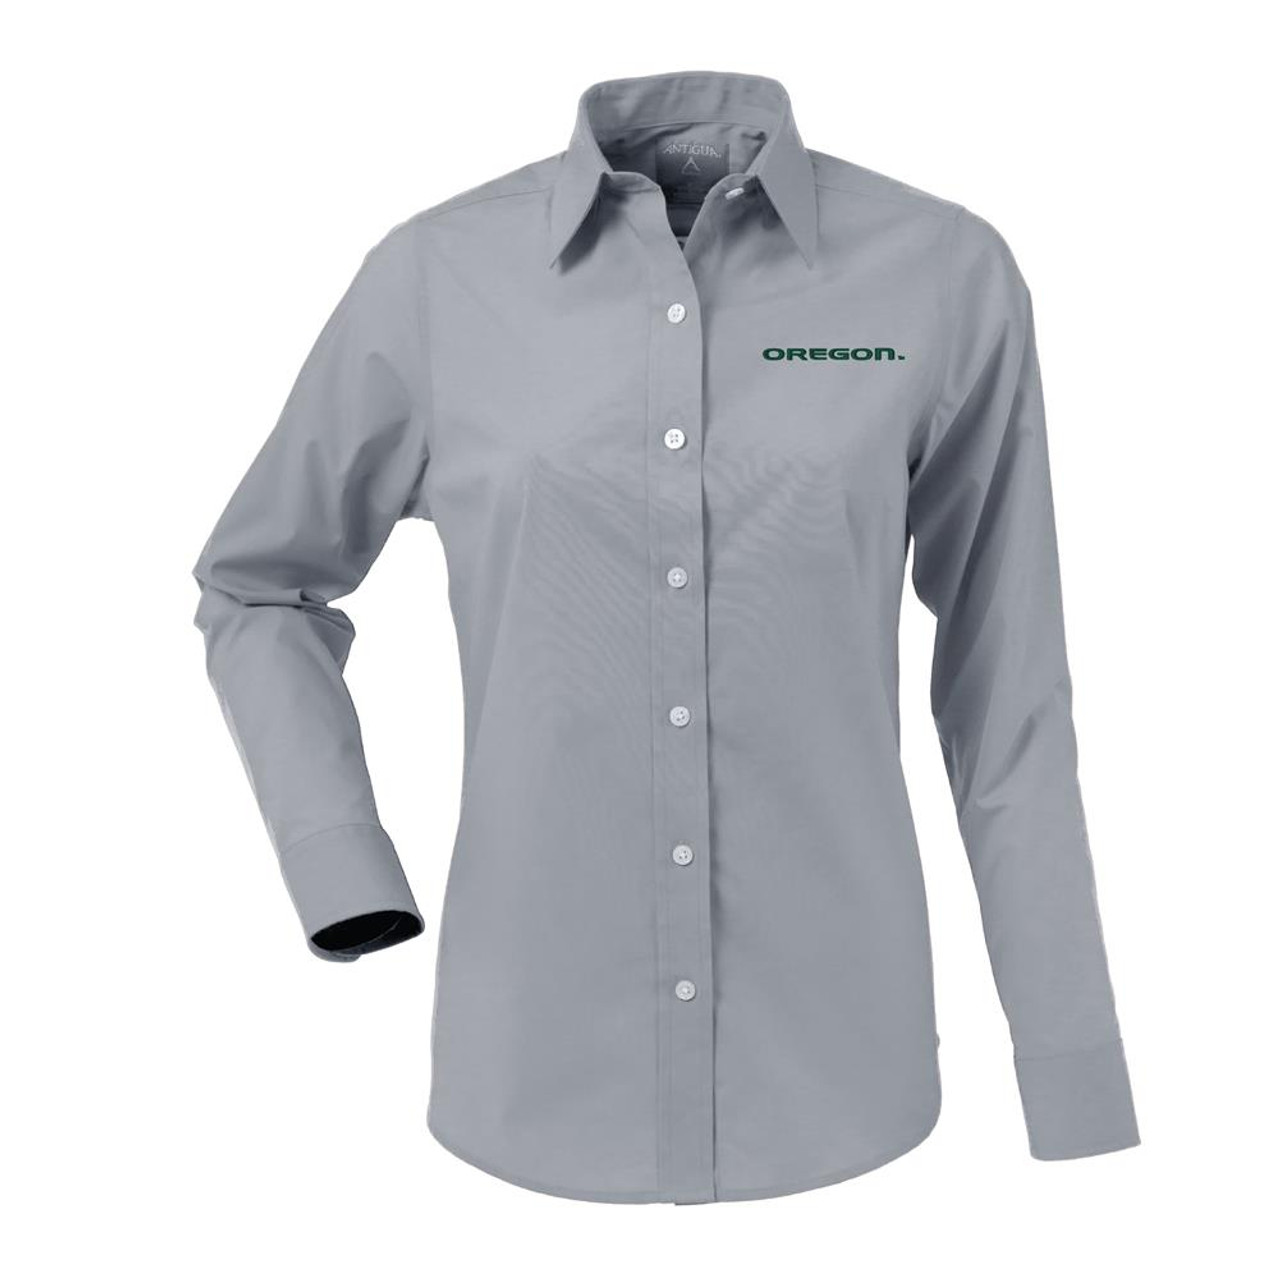 University of Oregon Ducks Women's Long Sleeve Dress Shirt